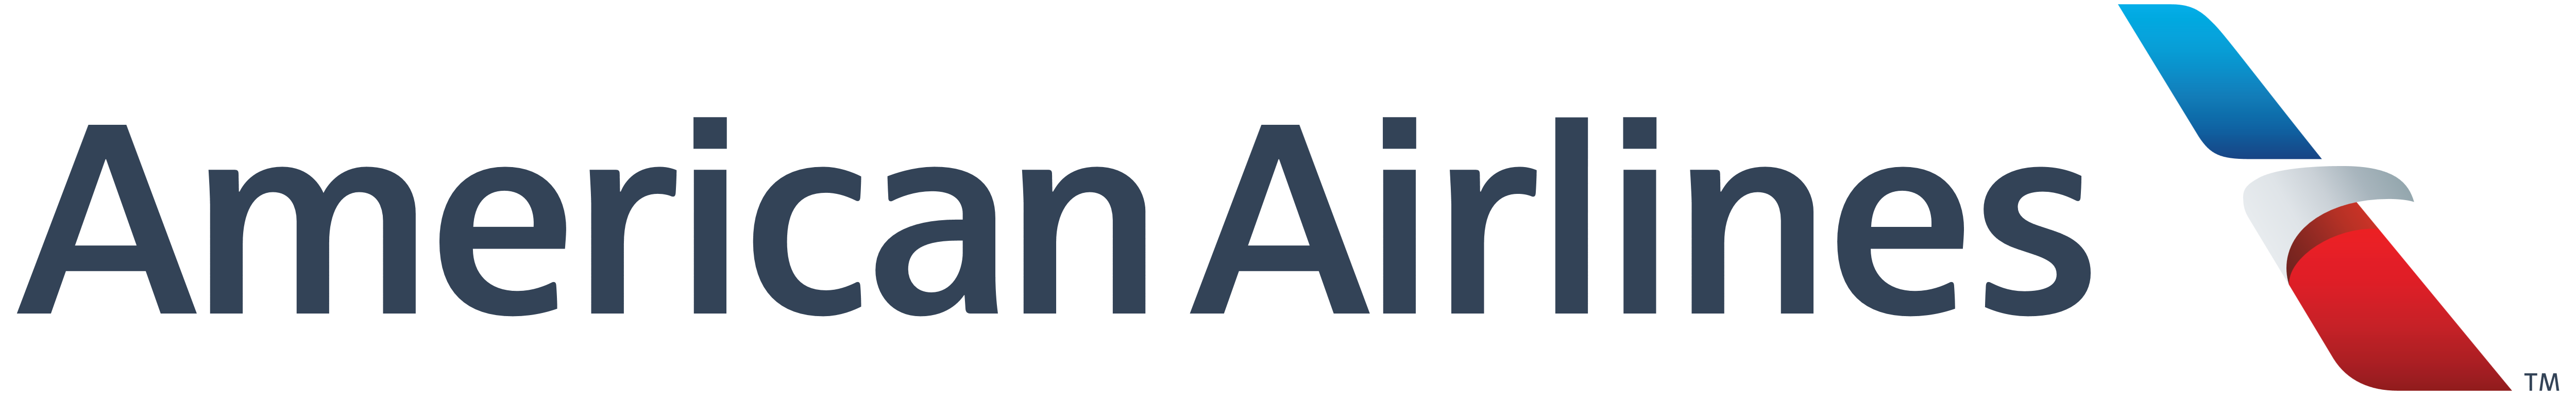 american airlines � logos download